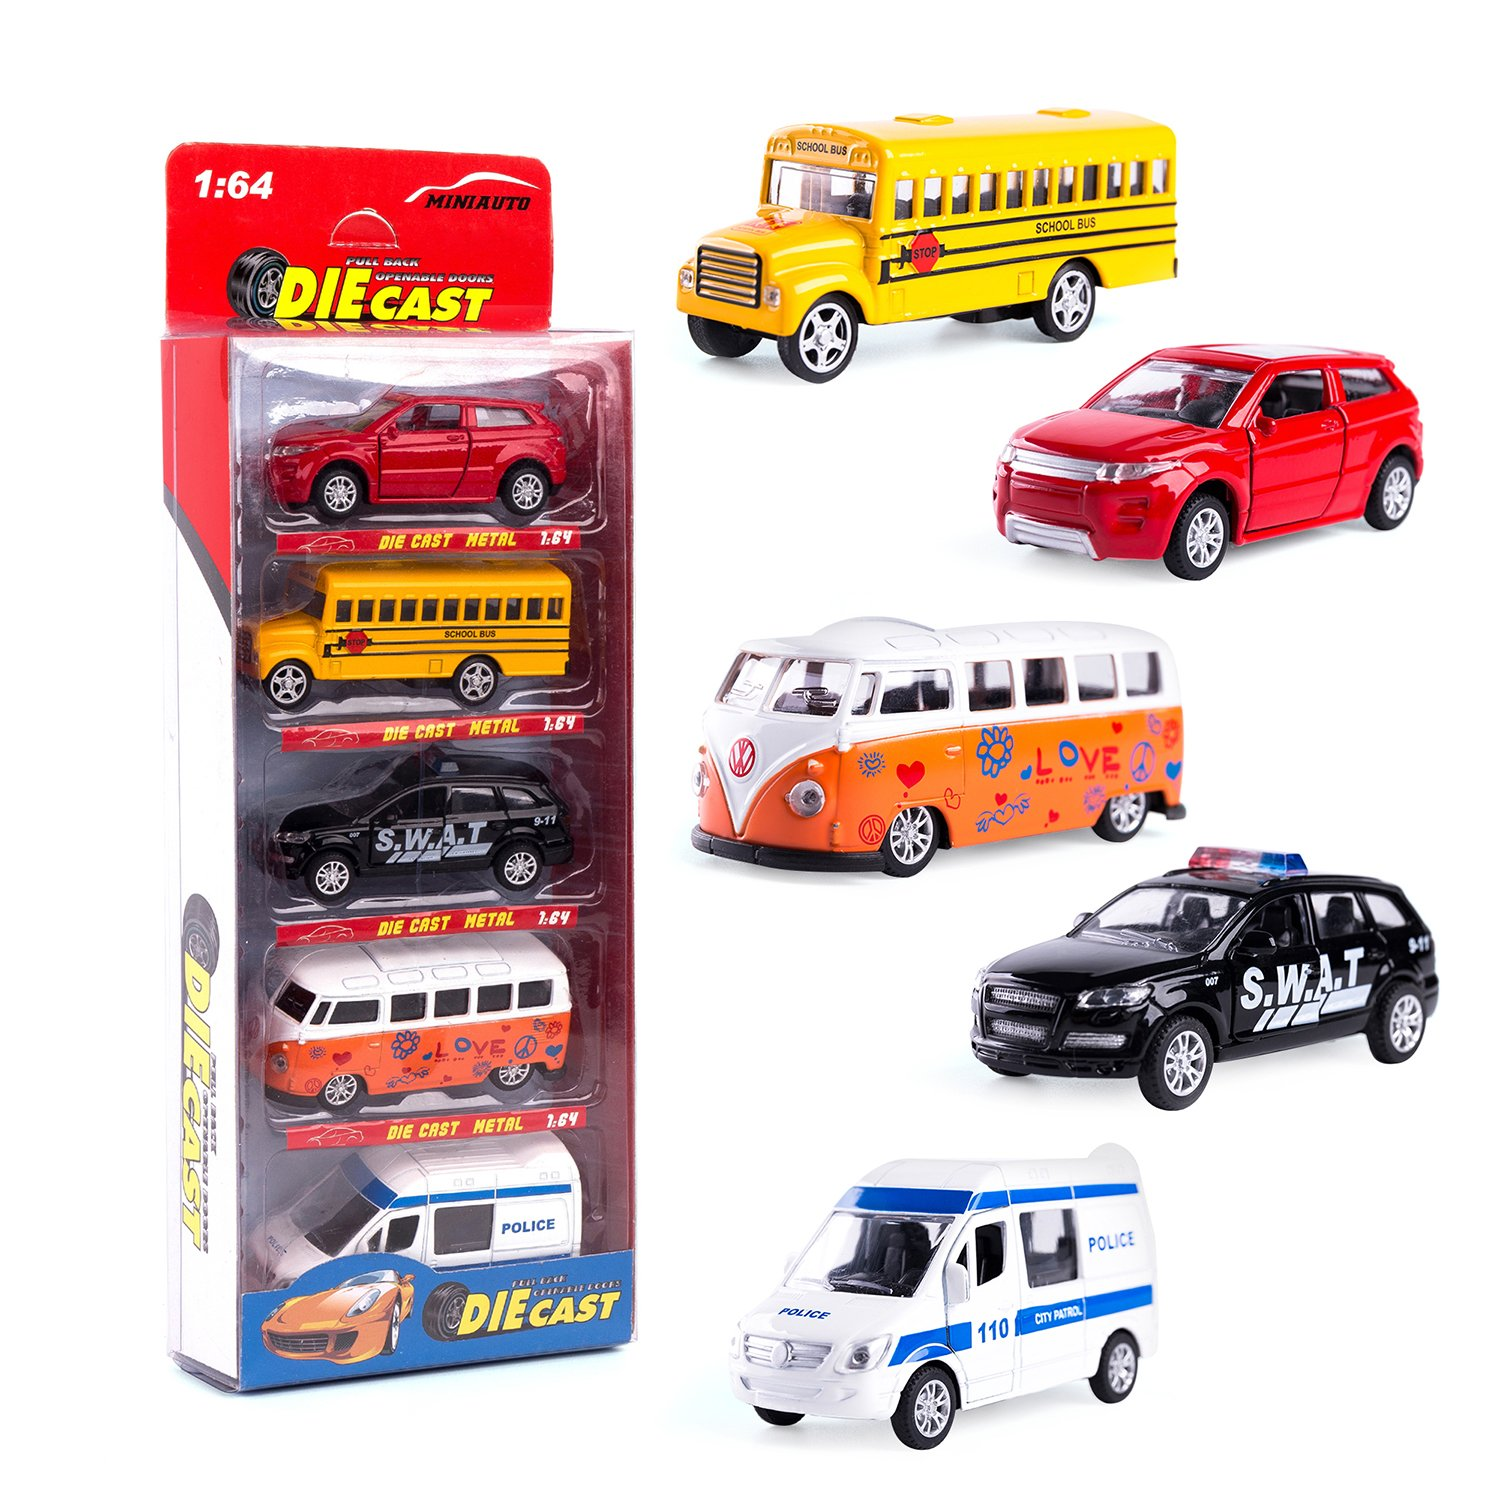 KIDAMI Die Cast Metal Toy Cars Set of 5 Openable Doors Pull Back Car Gift Pack for Kids Official car